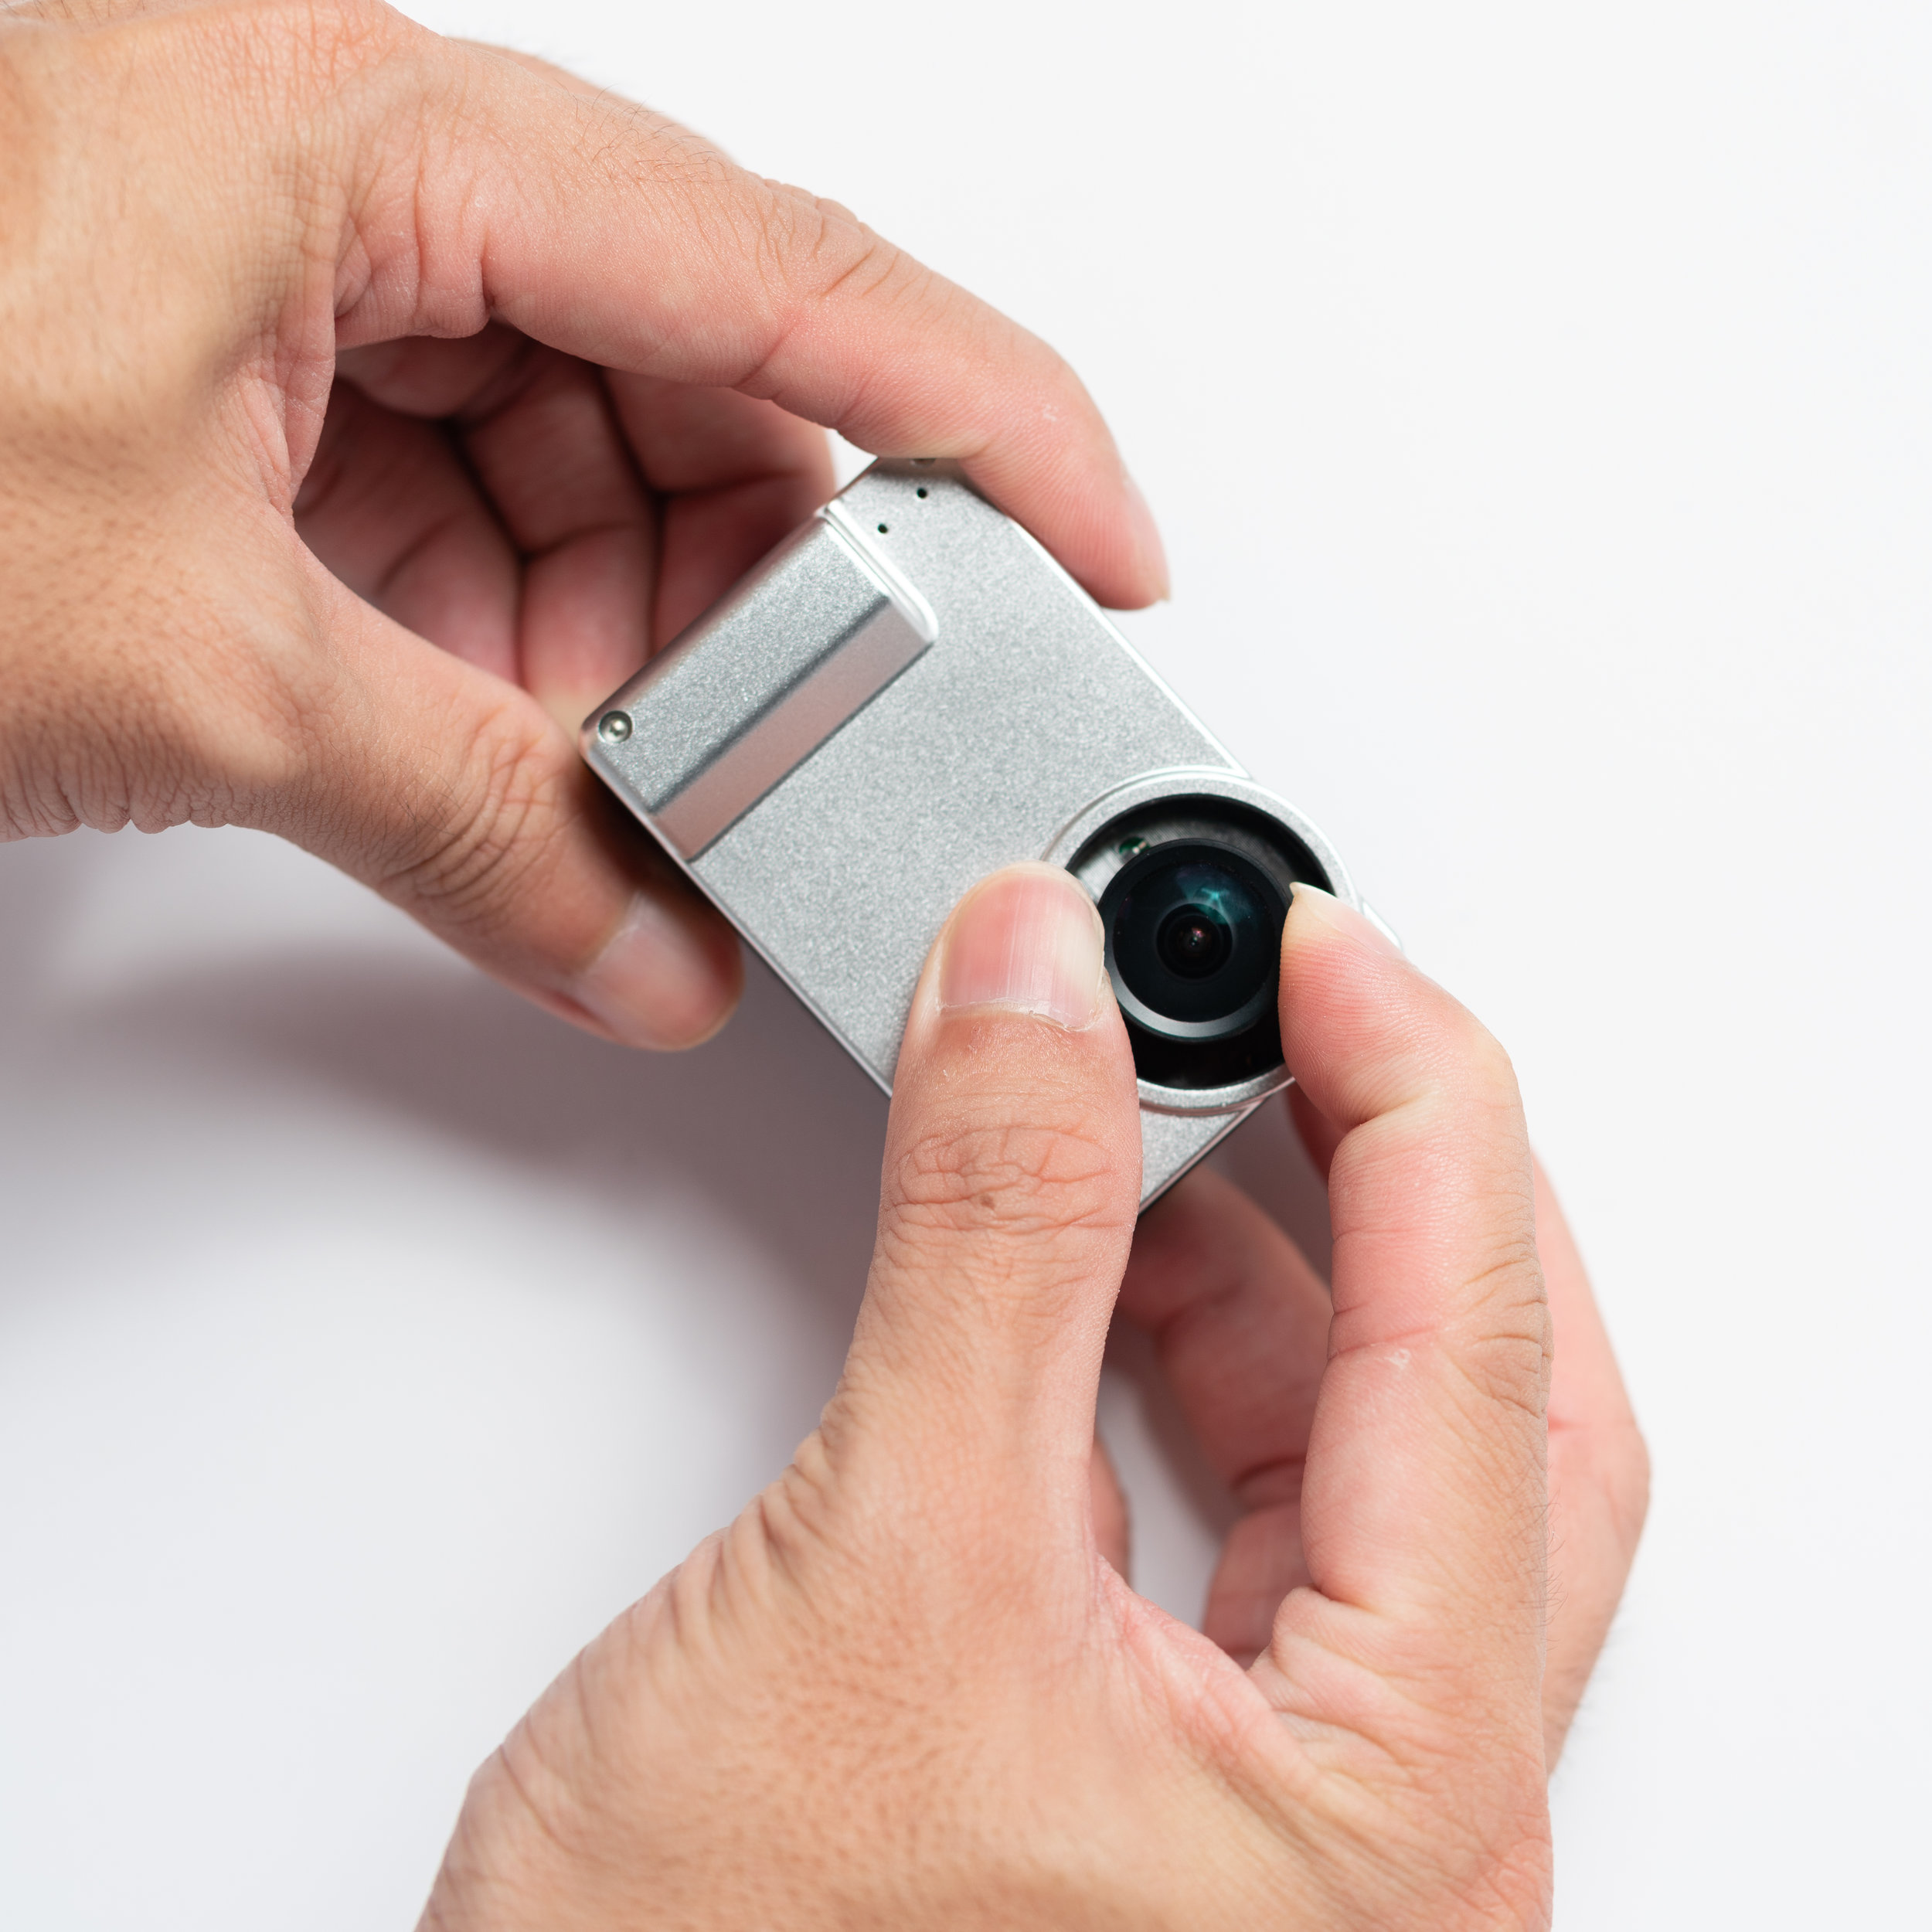 1. Remove the kit lens by twisting it counter clockwise and unscrewing it completely.